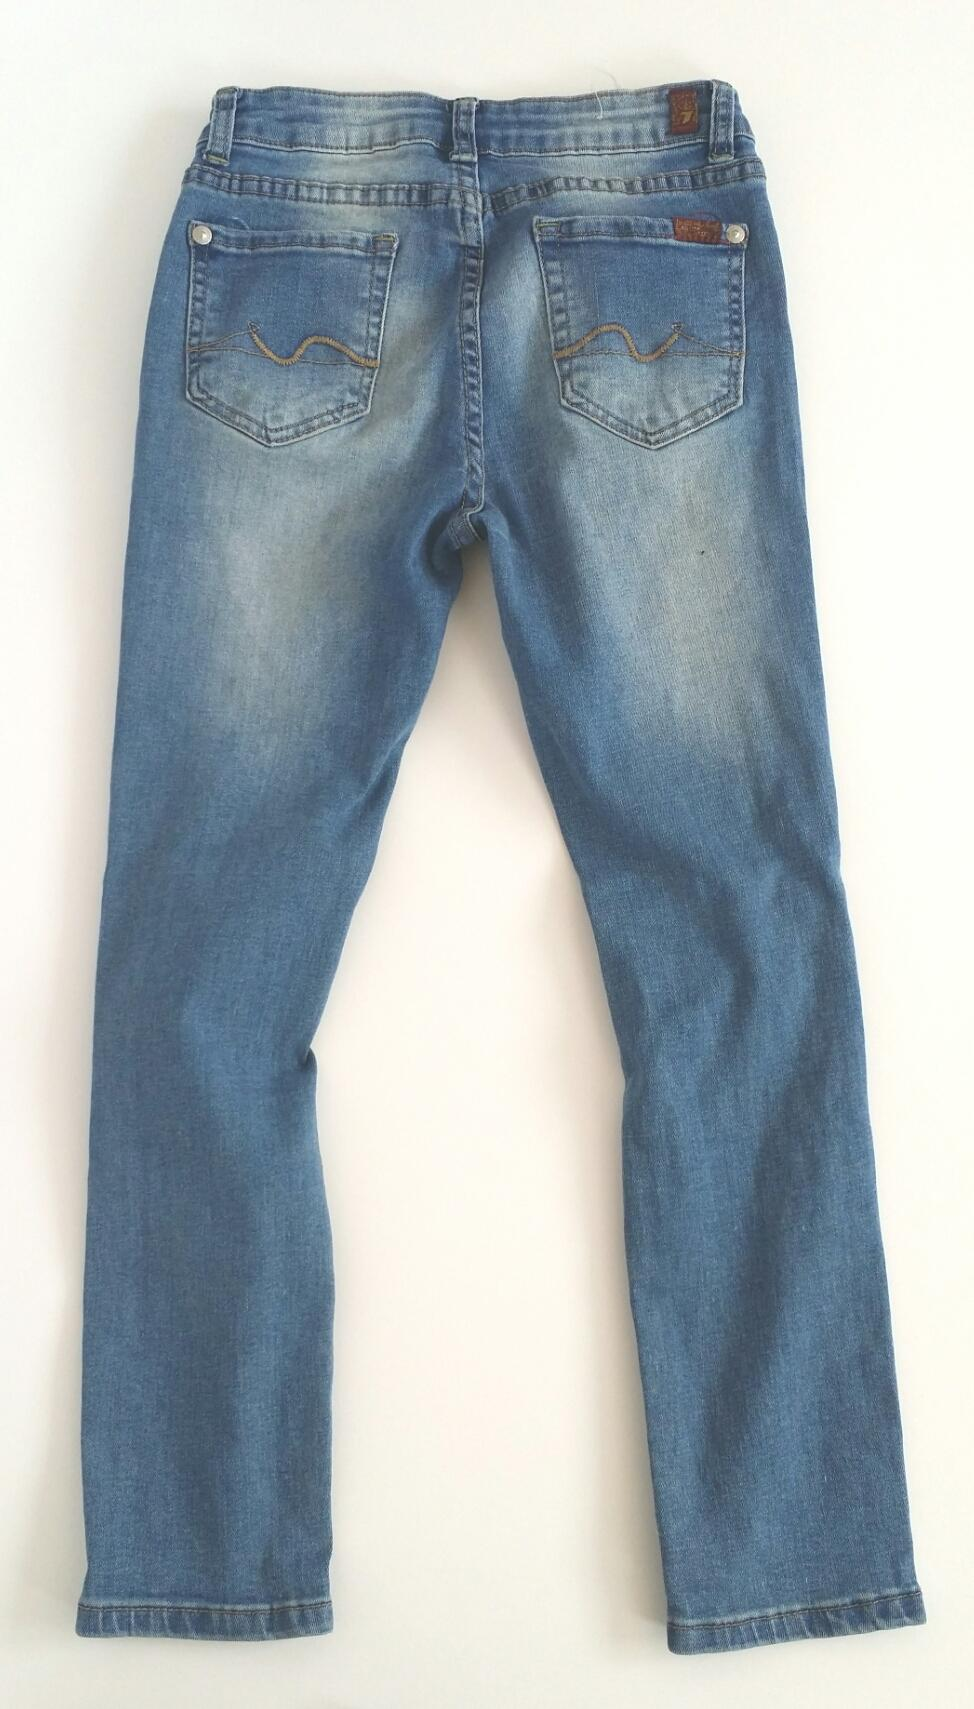 Seven-for-All-Mankind-10-YEARS-Distressed-Jeans_2083450B.jpg